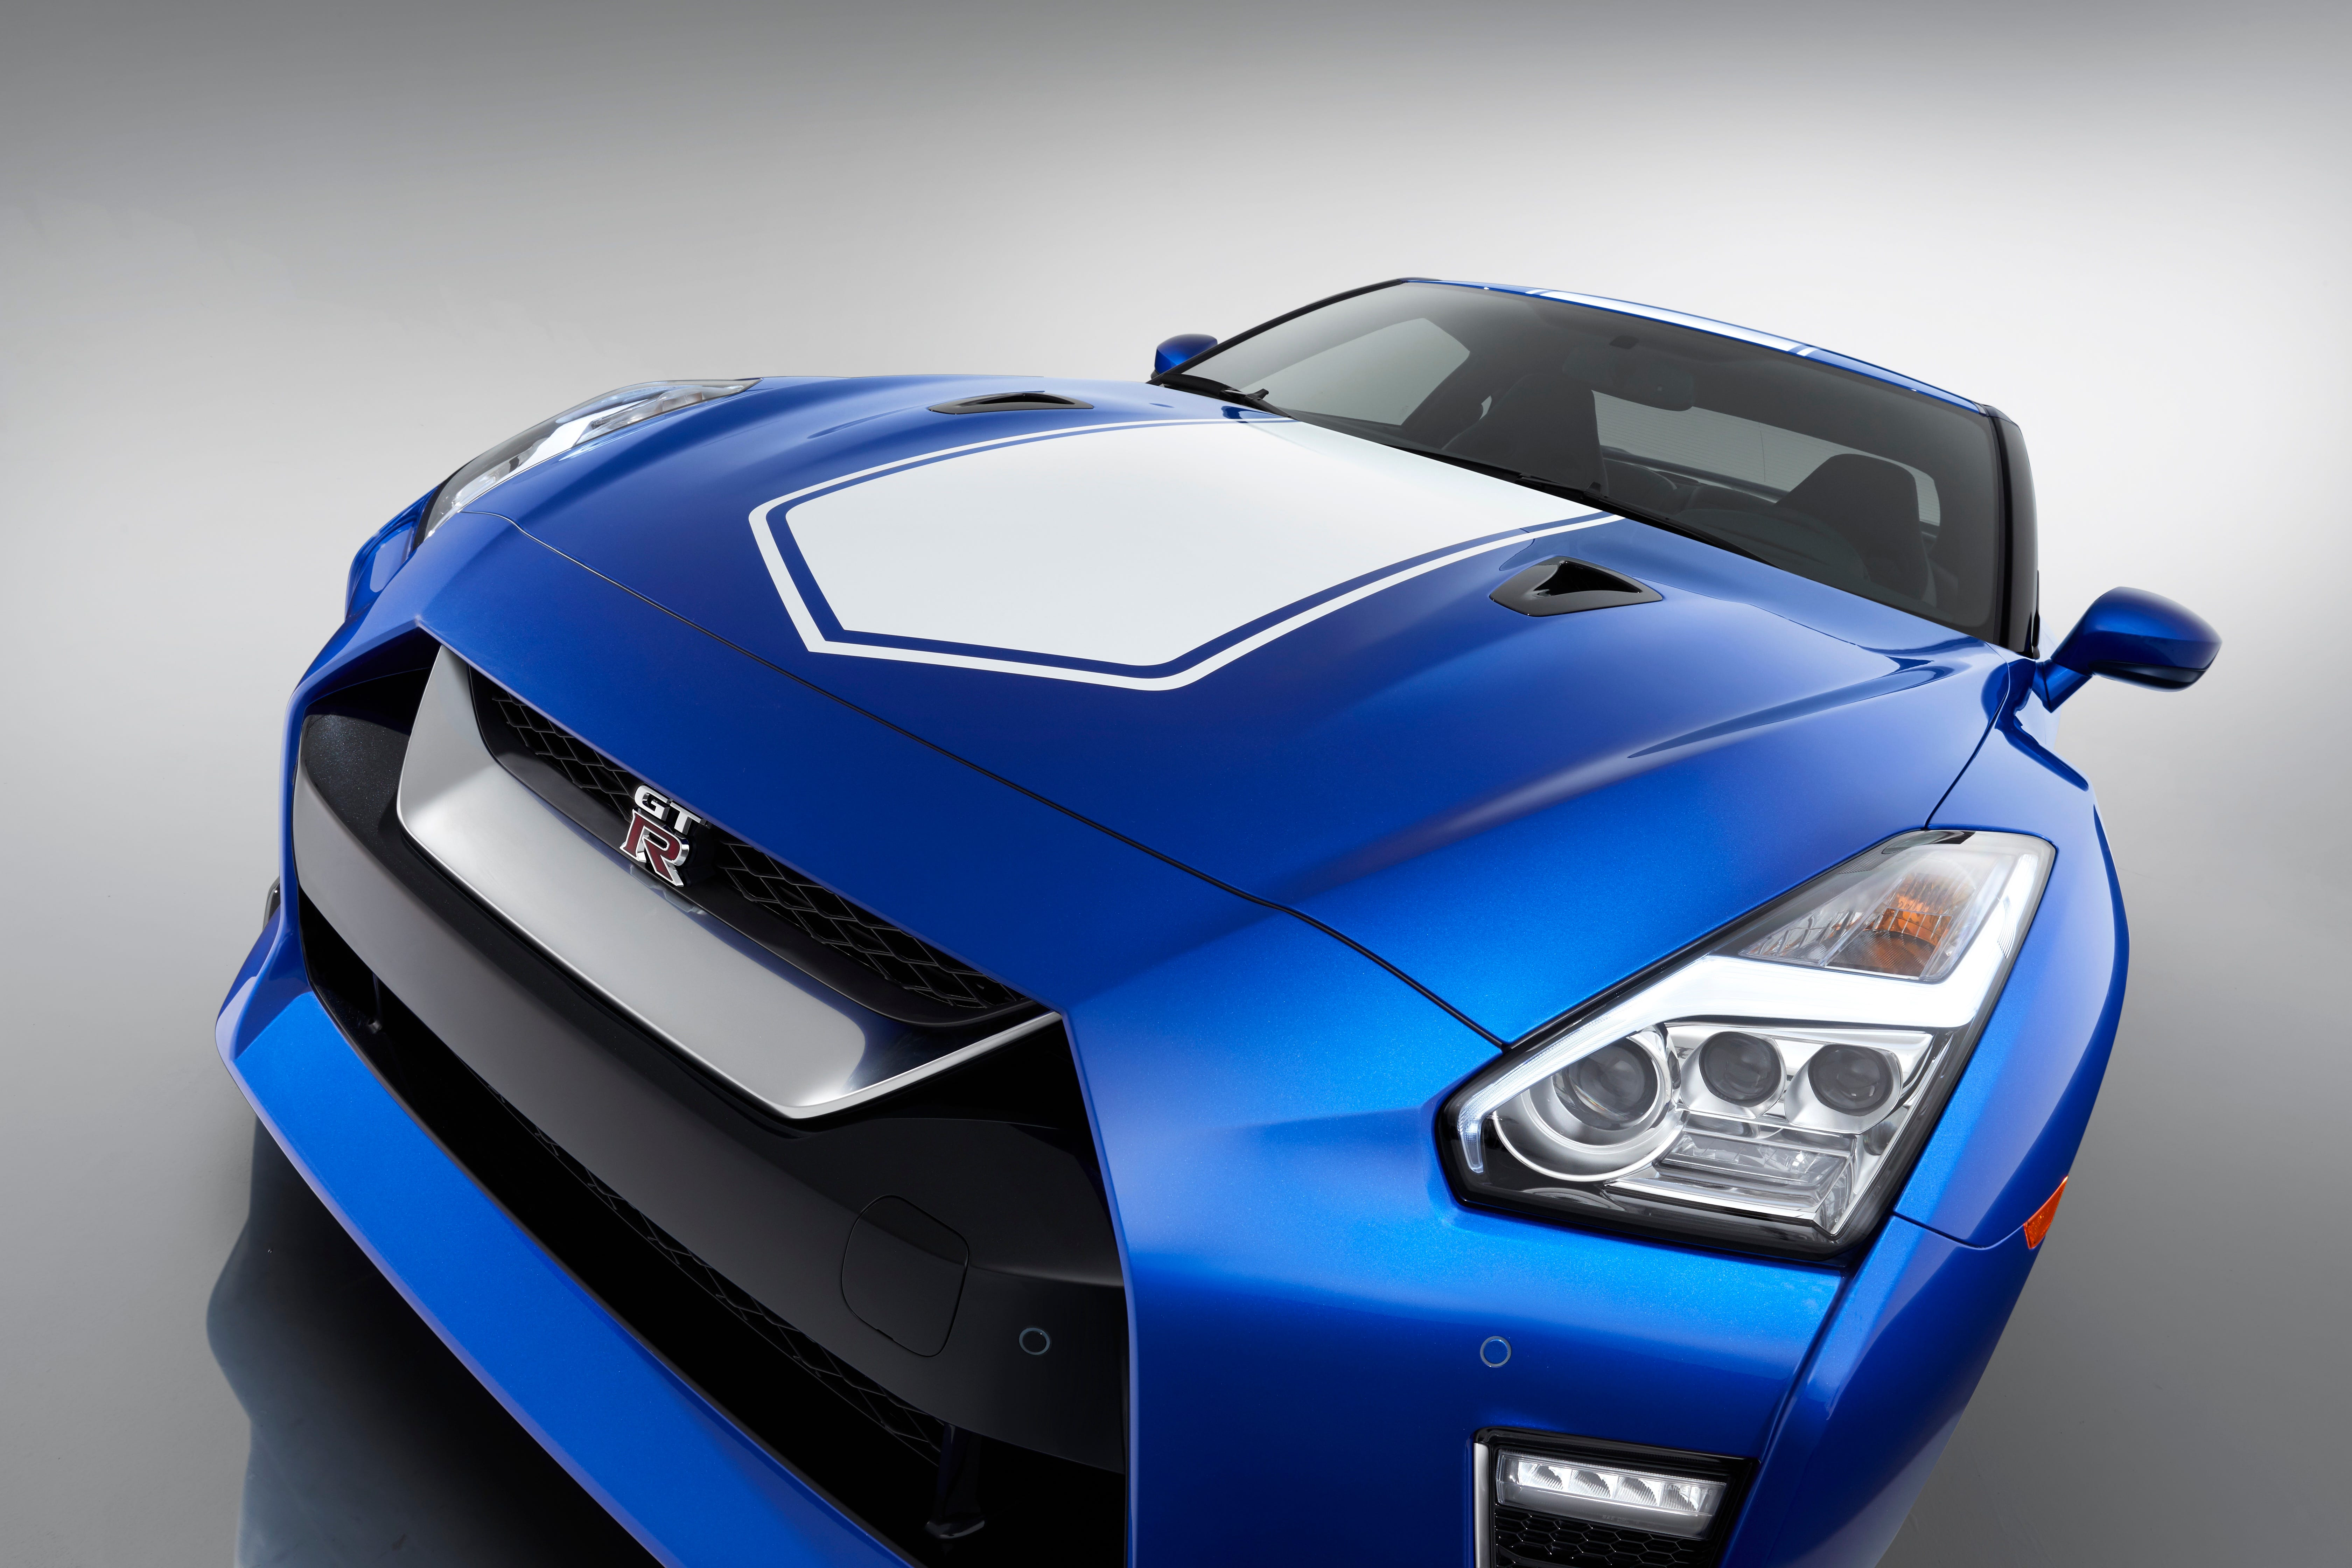 Nissan reveals 2020 GT-R at New York Auto Show with 565 horsepower